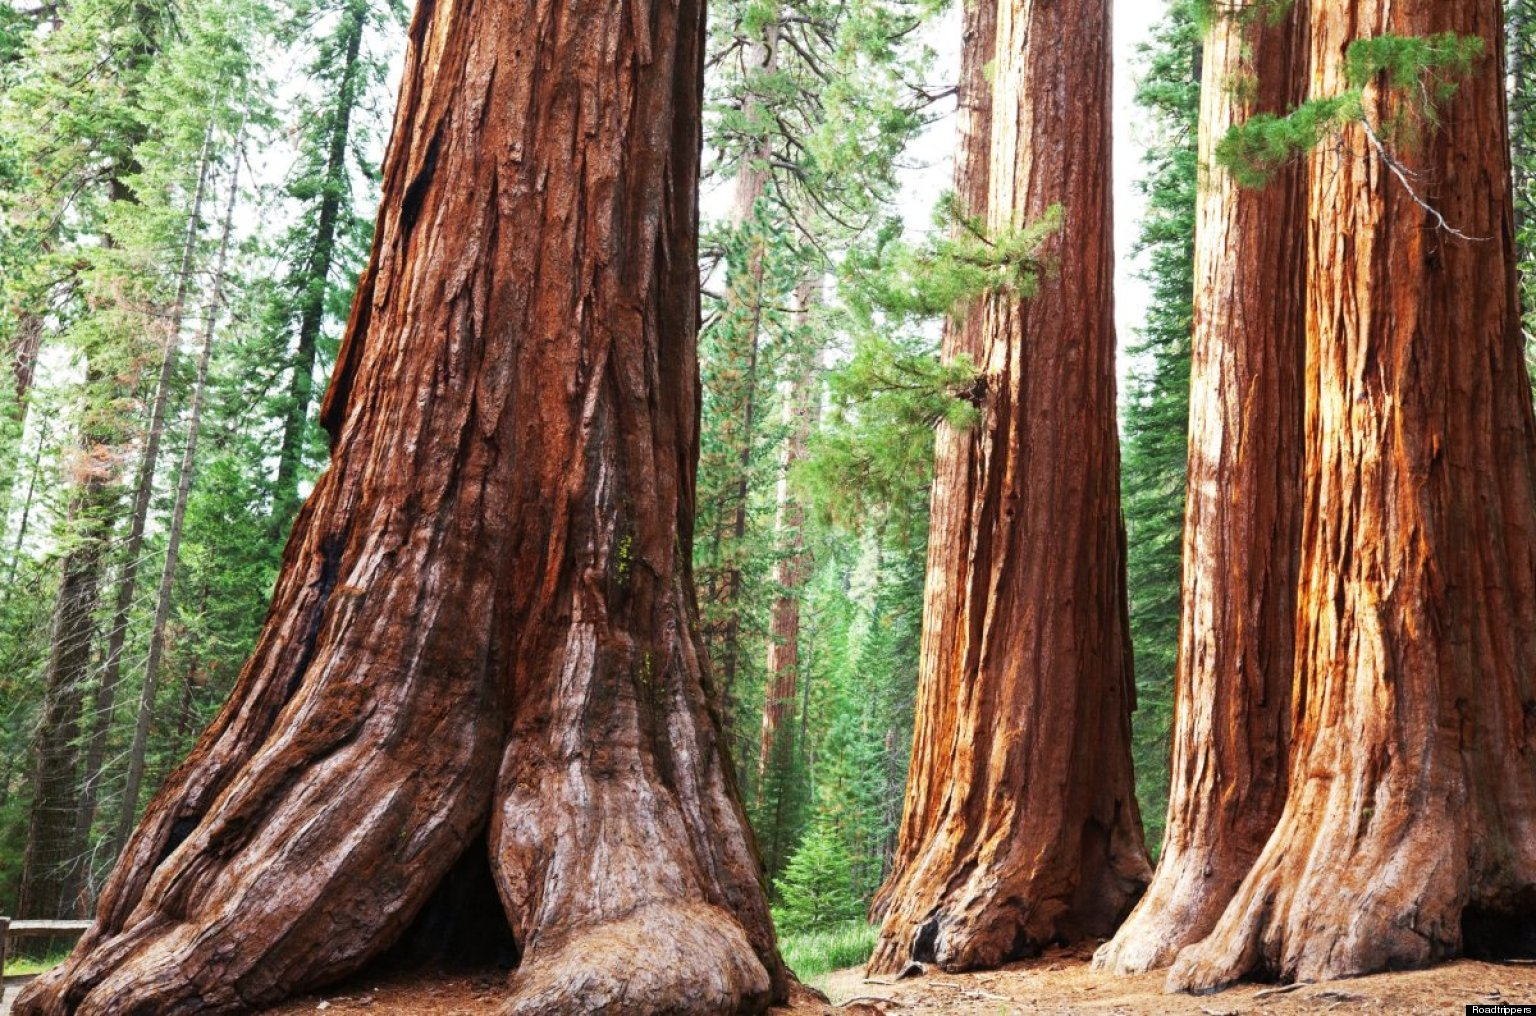 1000+ images about Sequoia National Park on Pinterest.